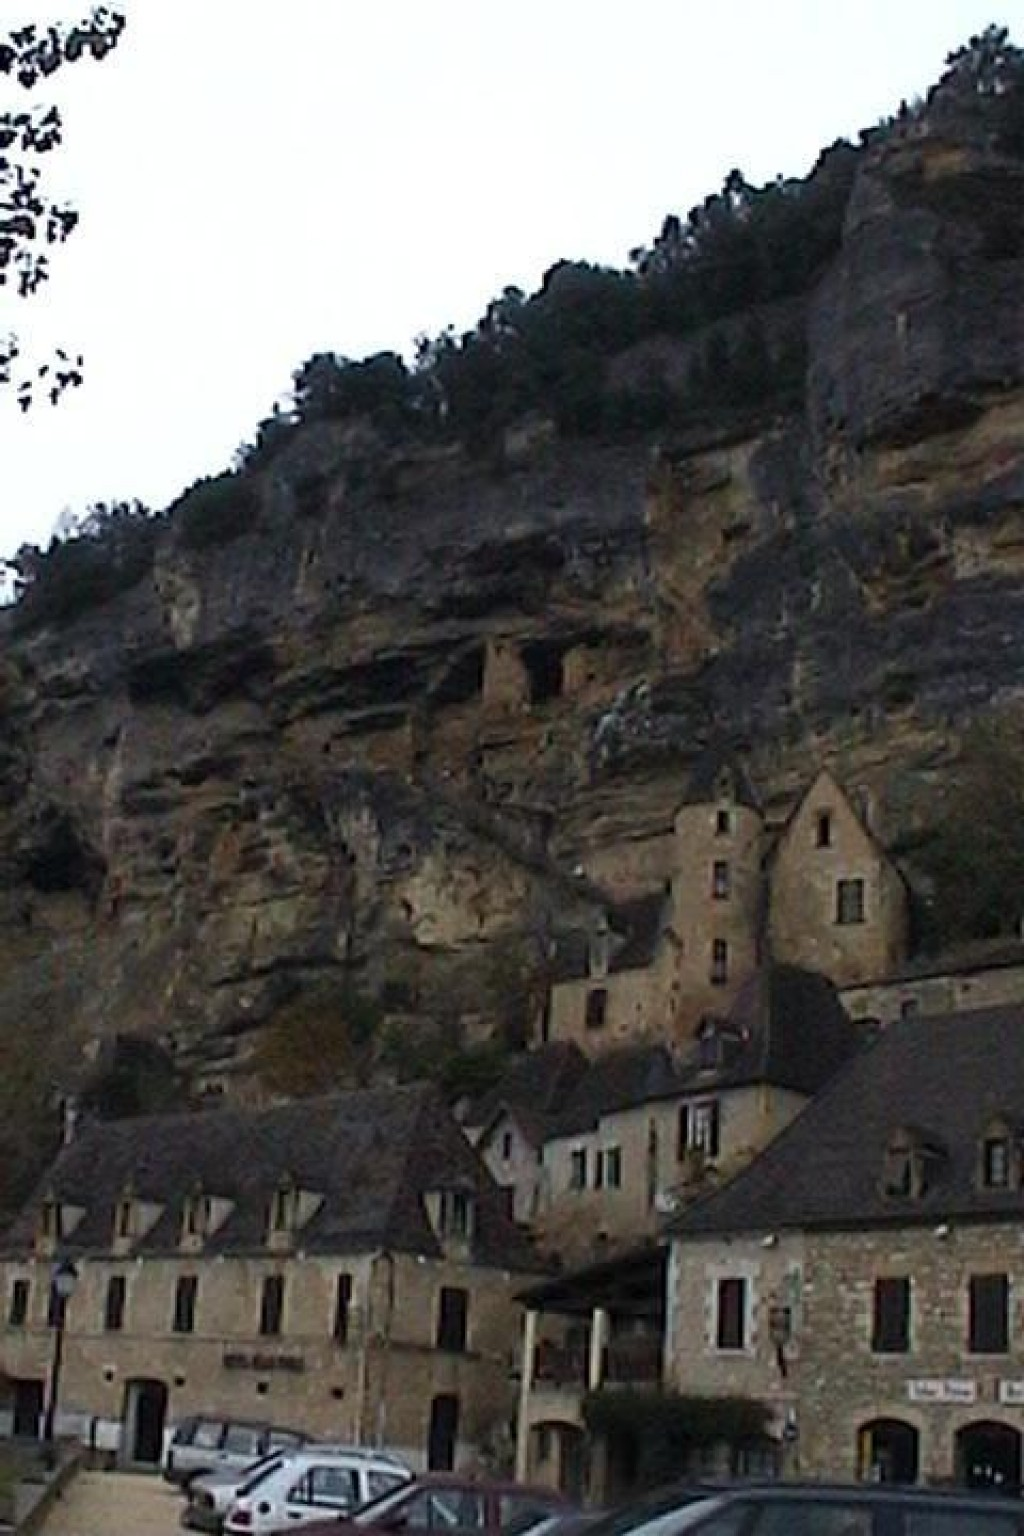 From Sarlat we took a drive along the Dordogne River. This is La Roque-Gageac.